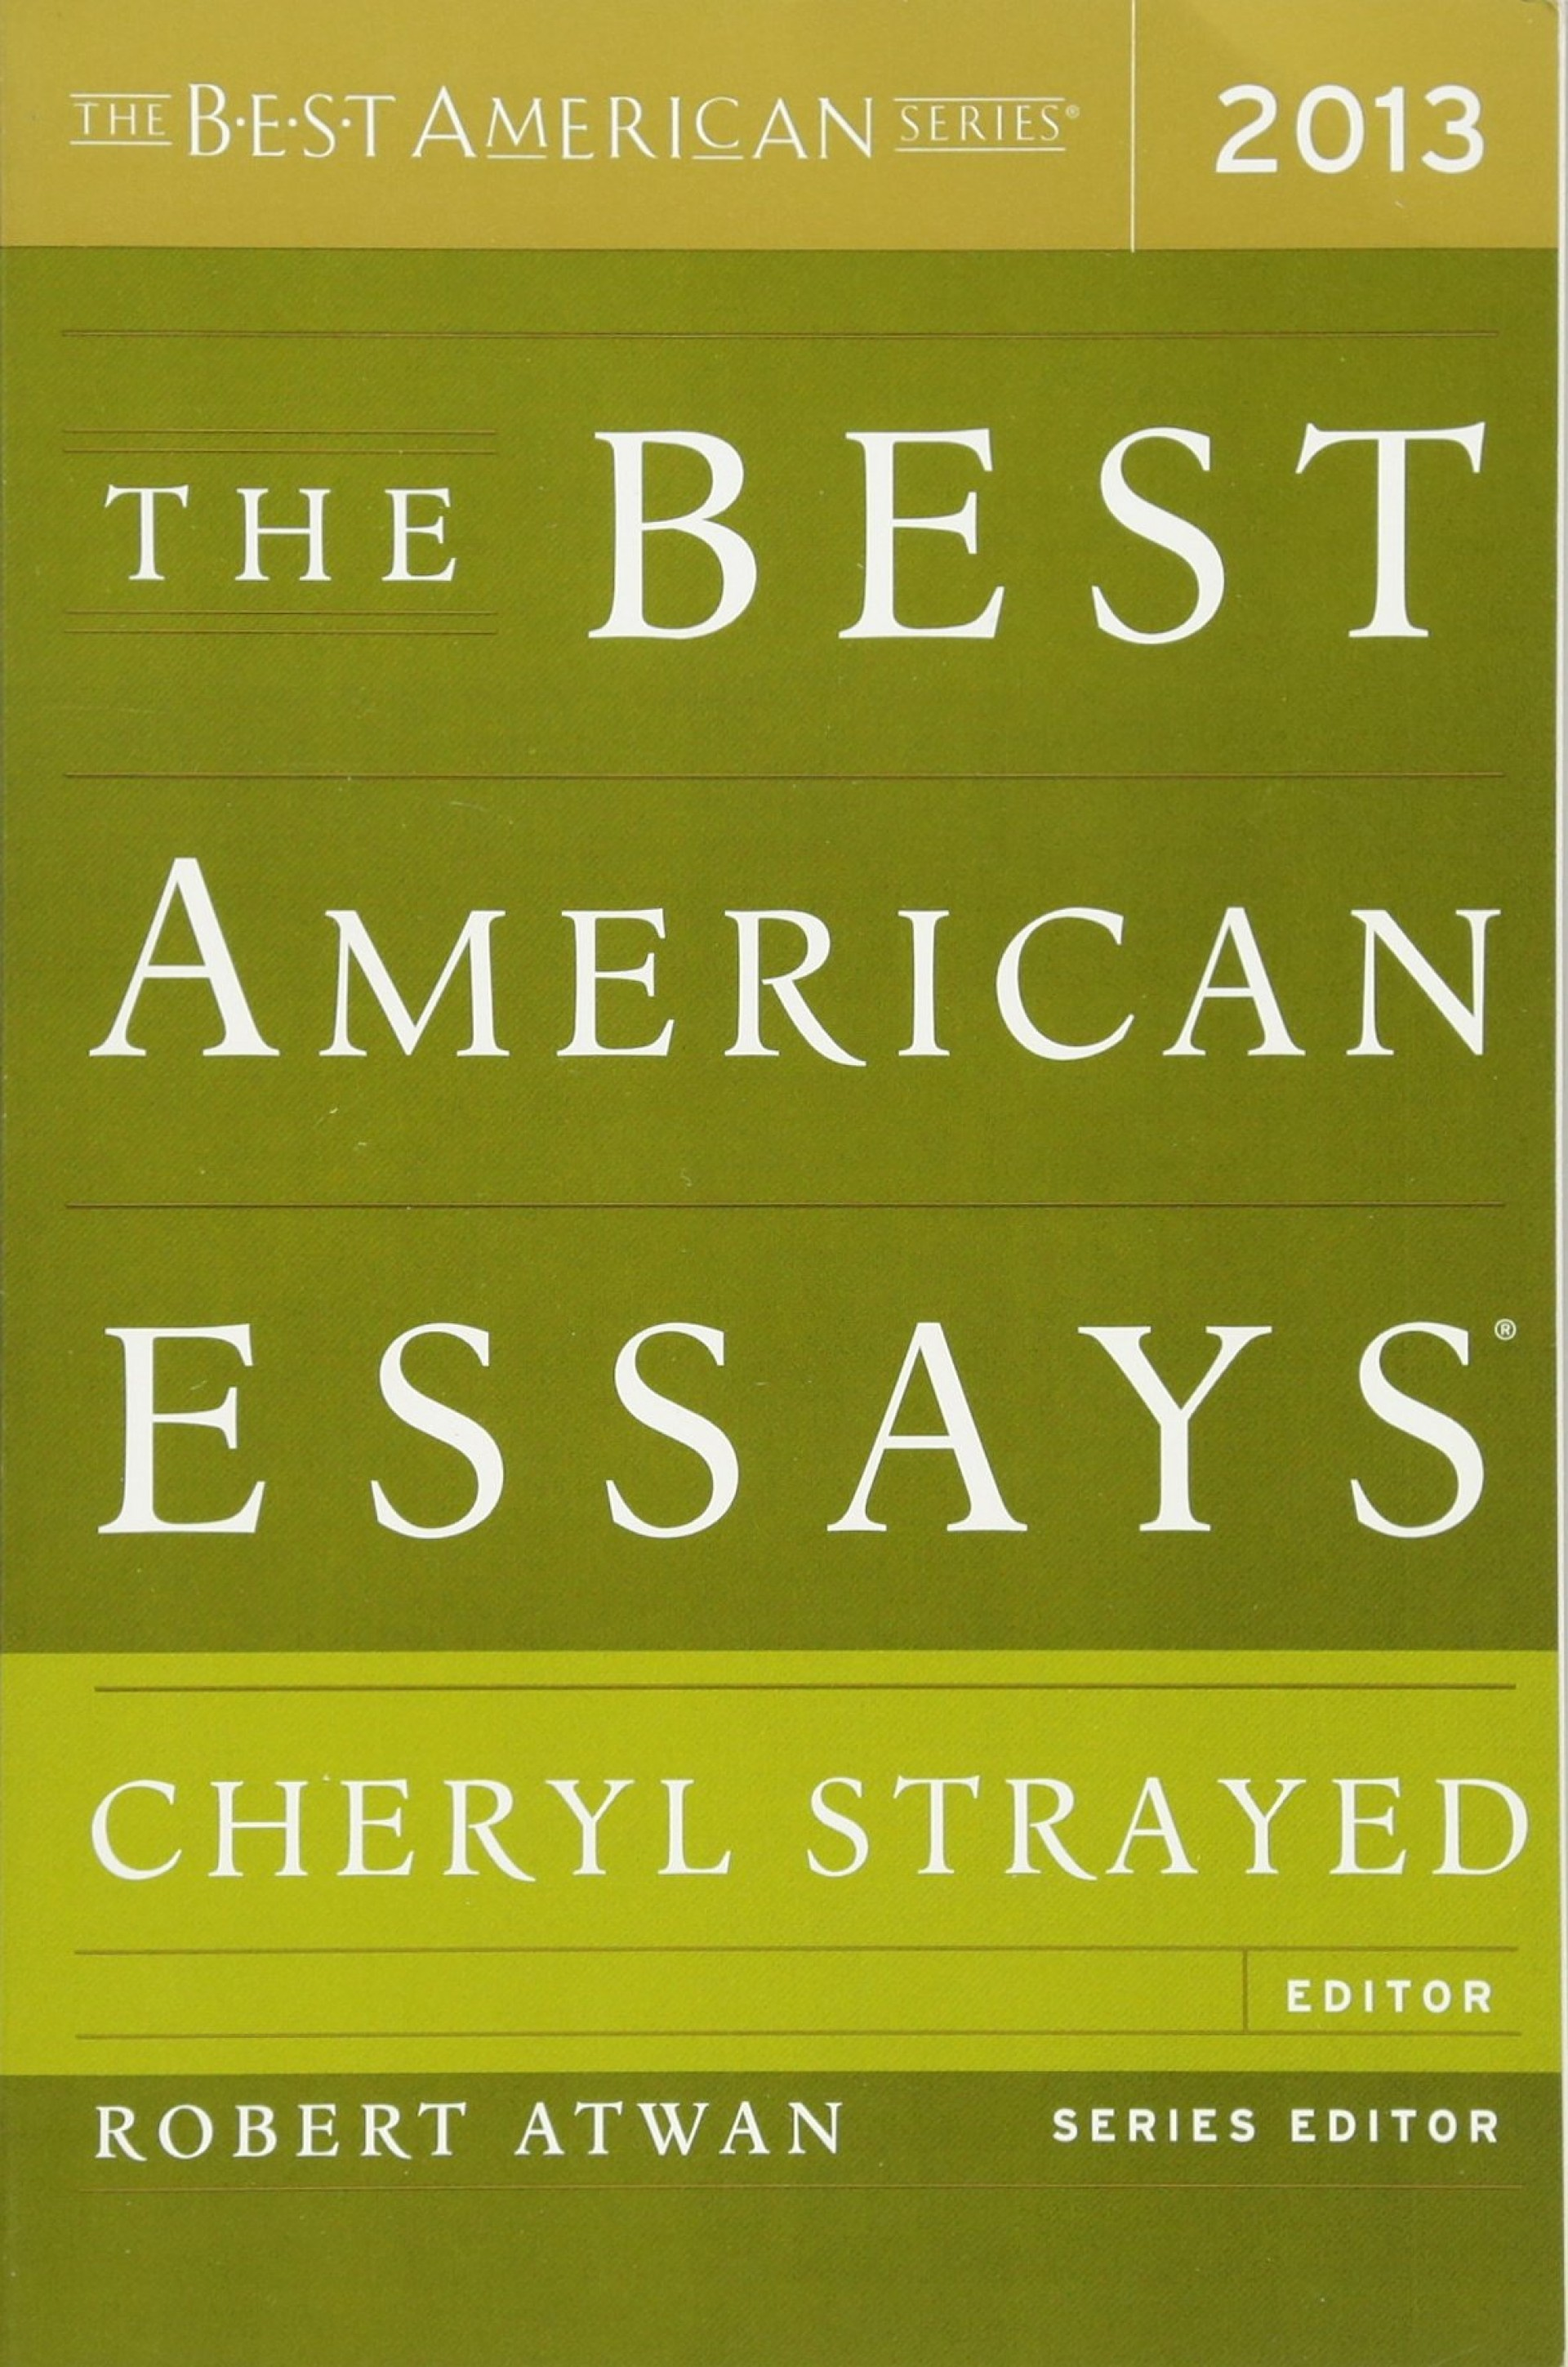 002 Essay Example 81nkls2j9vl Best American Striking Essays 2017 Table Of Contents The Century Pdf 1920